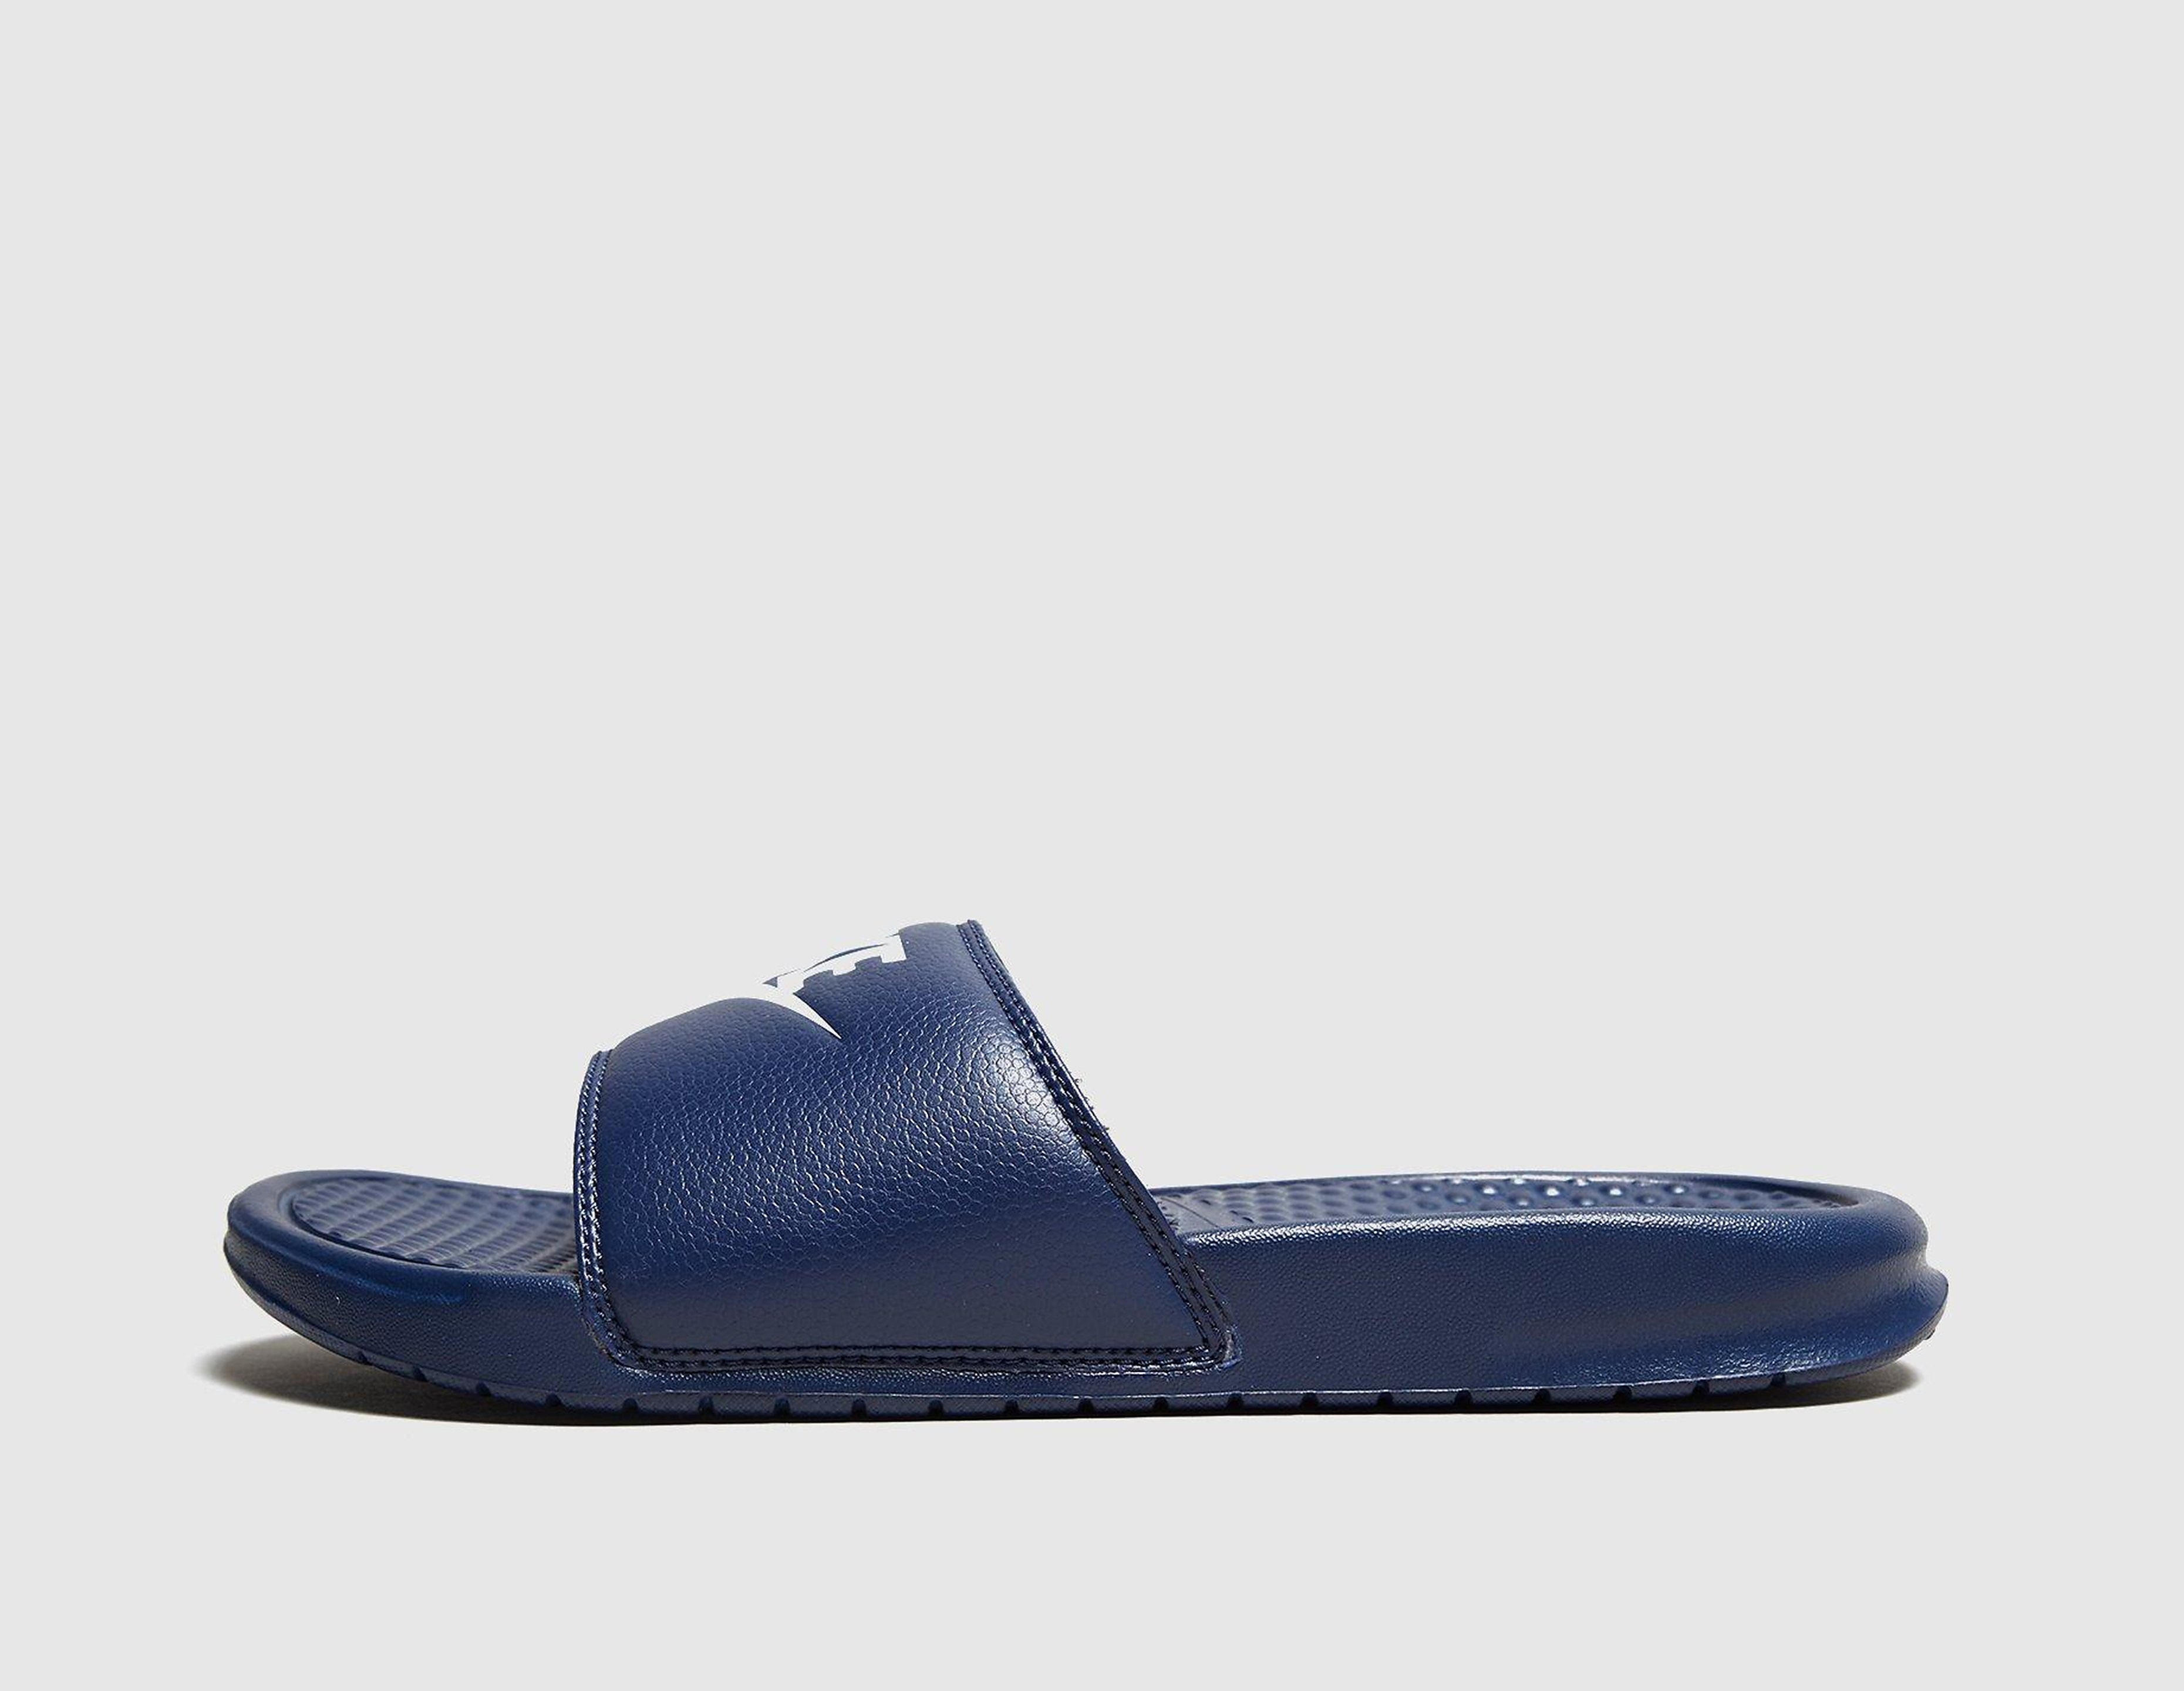 Nike Chanclas Benassi Just do it